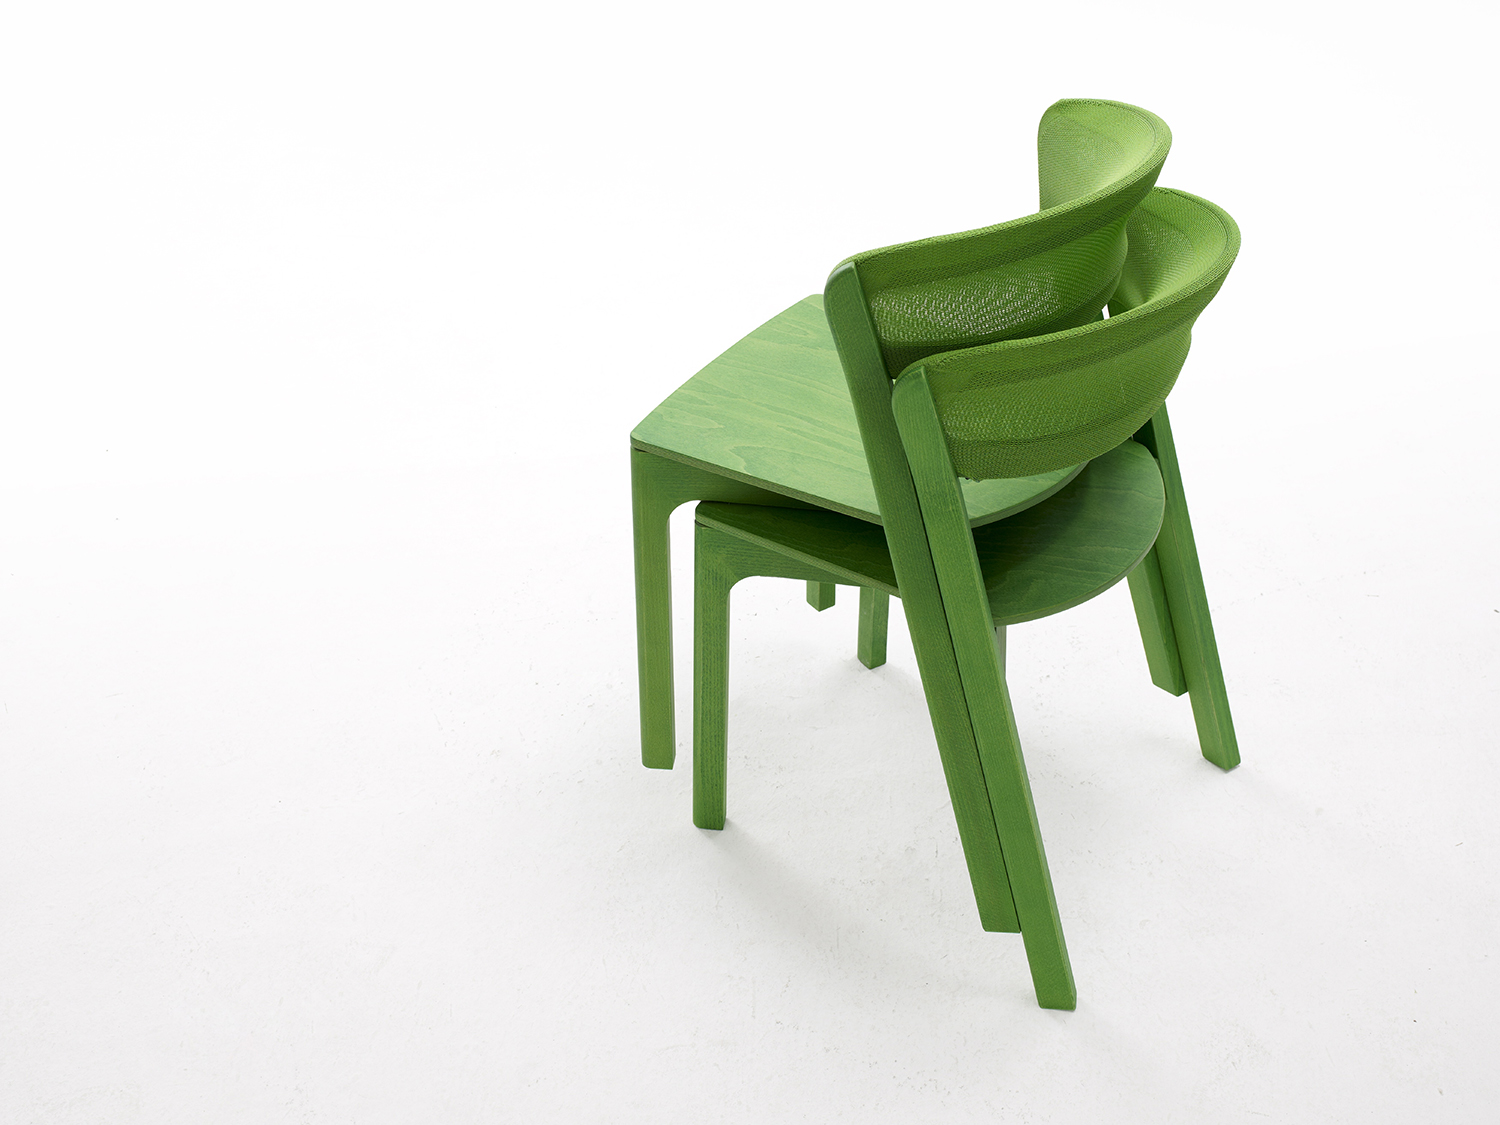 Arco cafe Chair - AD RESIZED - 2.jpg